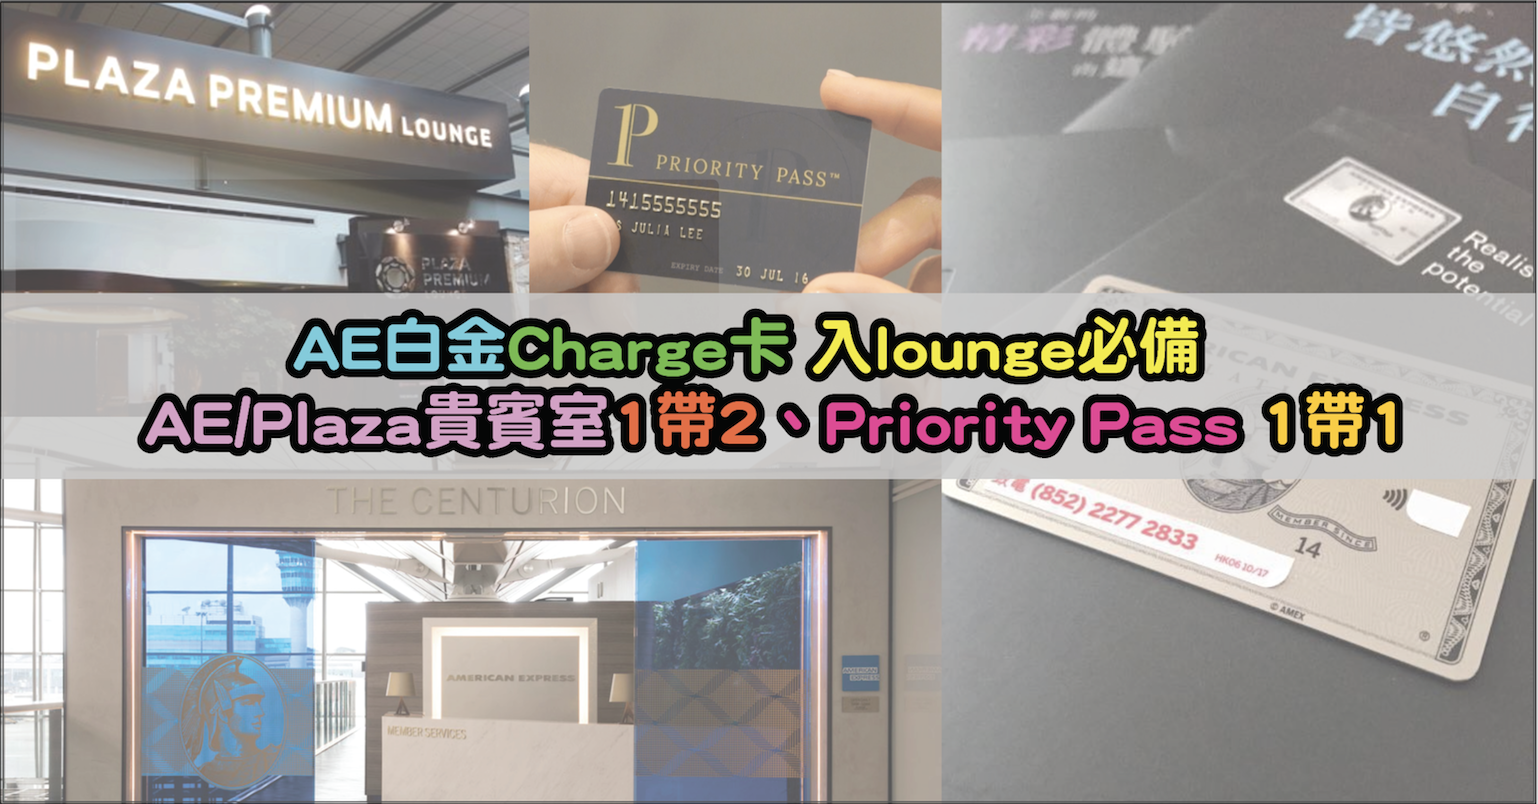 American Express AE 白金Charge卡入lounge必備!AE/Plaza貴賓室1帶2、Priority Pass 1帶1!另加The American Express Global Lounge Collection 貴賓室!